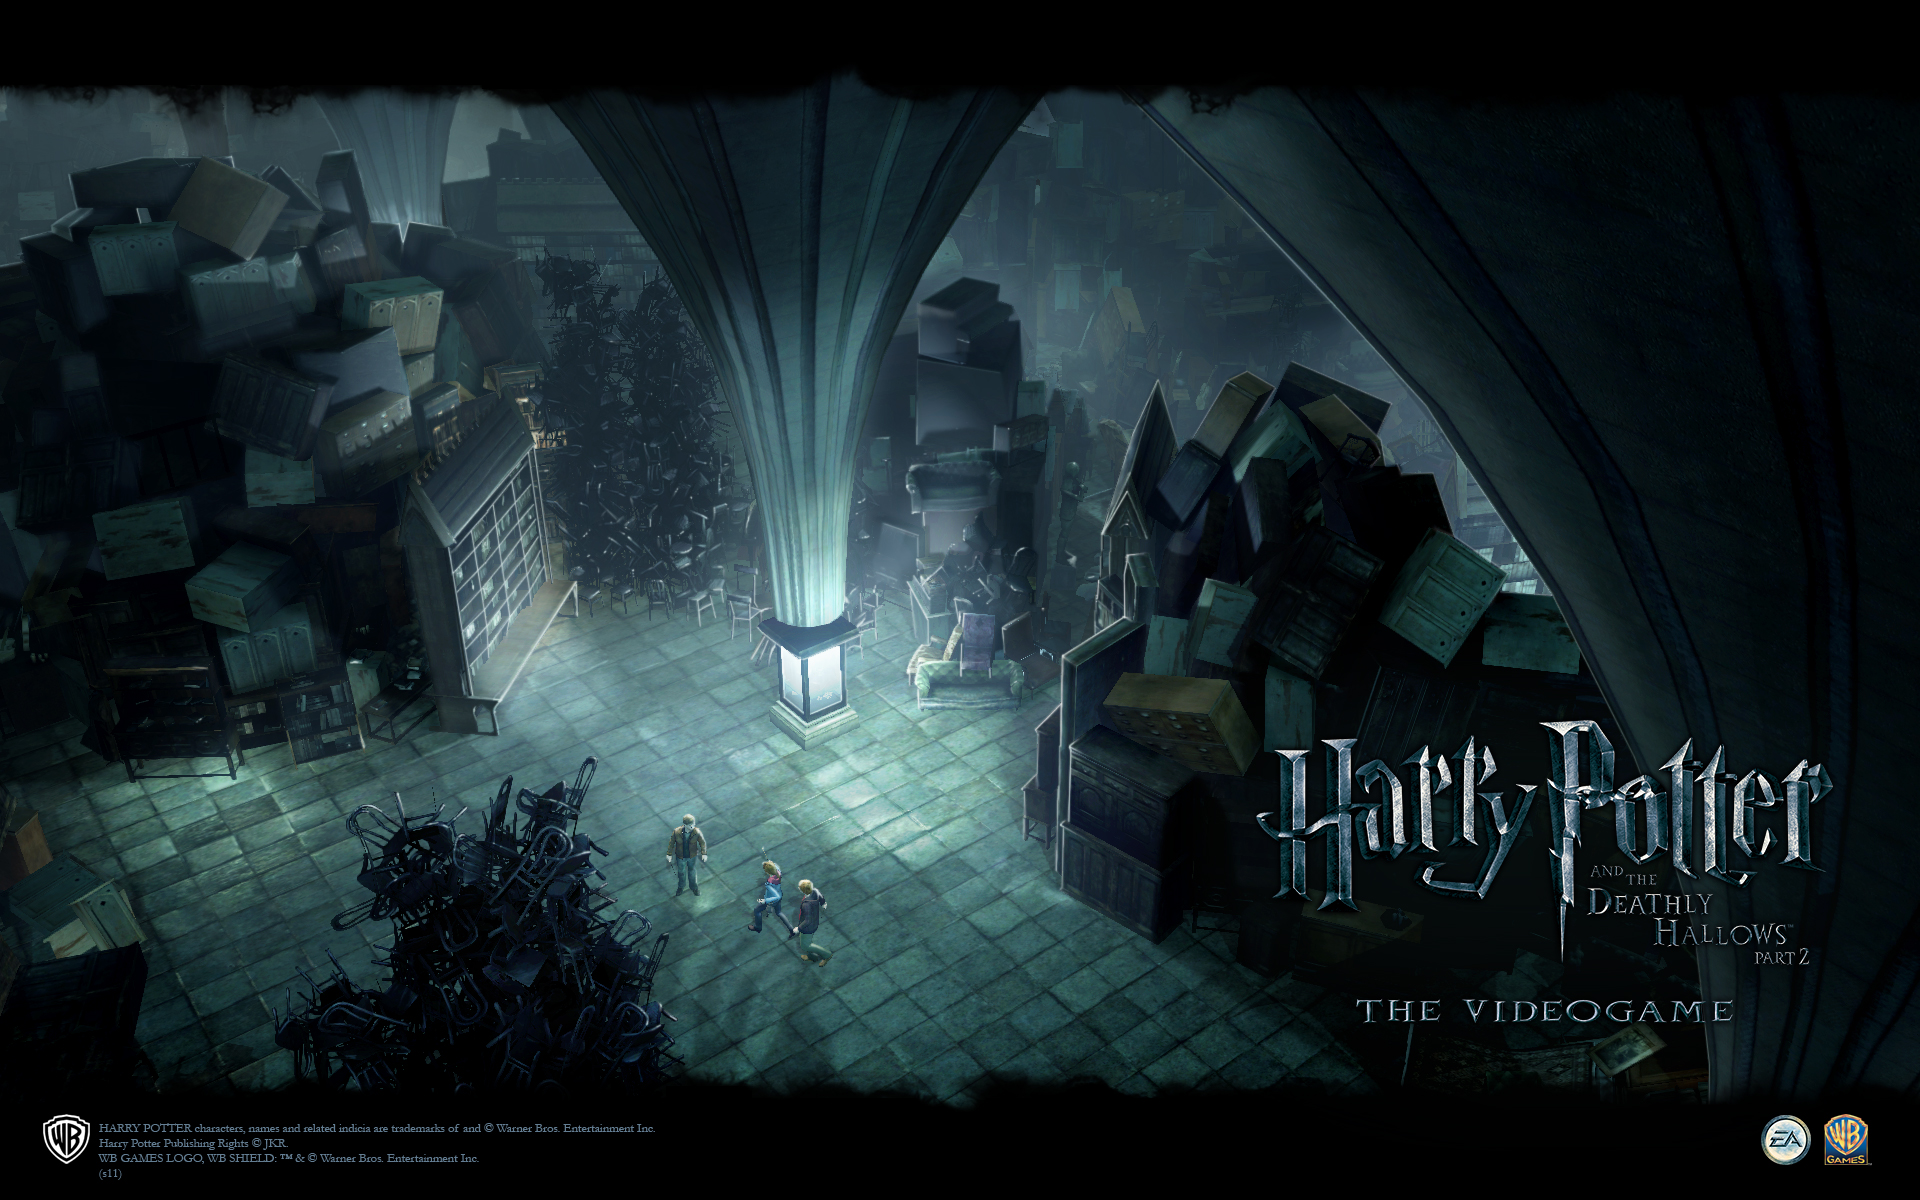 Harry Potter Images Harry Potter Games Hd Wallpaper And Background